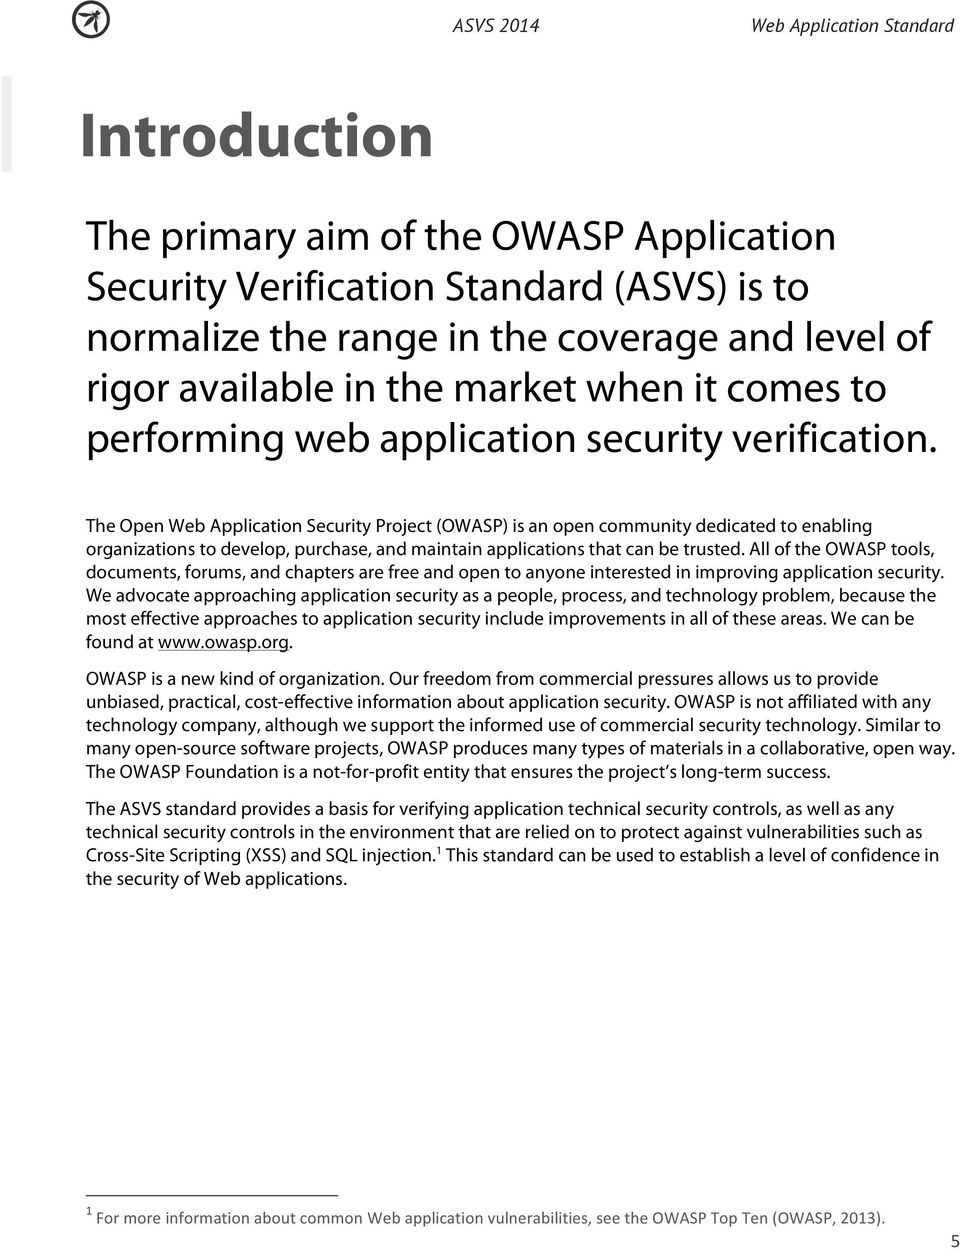 The Open Web Application Security Project (OWASP) is an open community dedicated to enabling organizations to develop, purchase, and maintain applications that can be trusted.